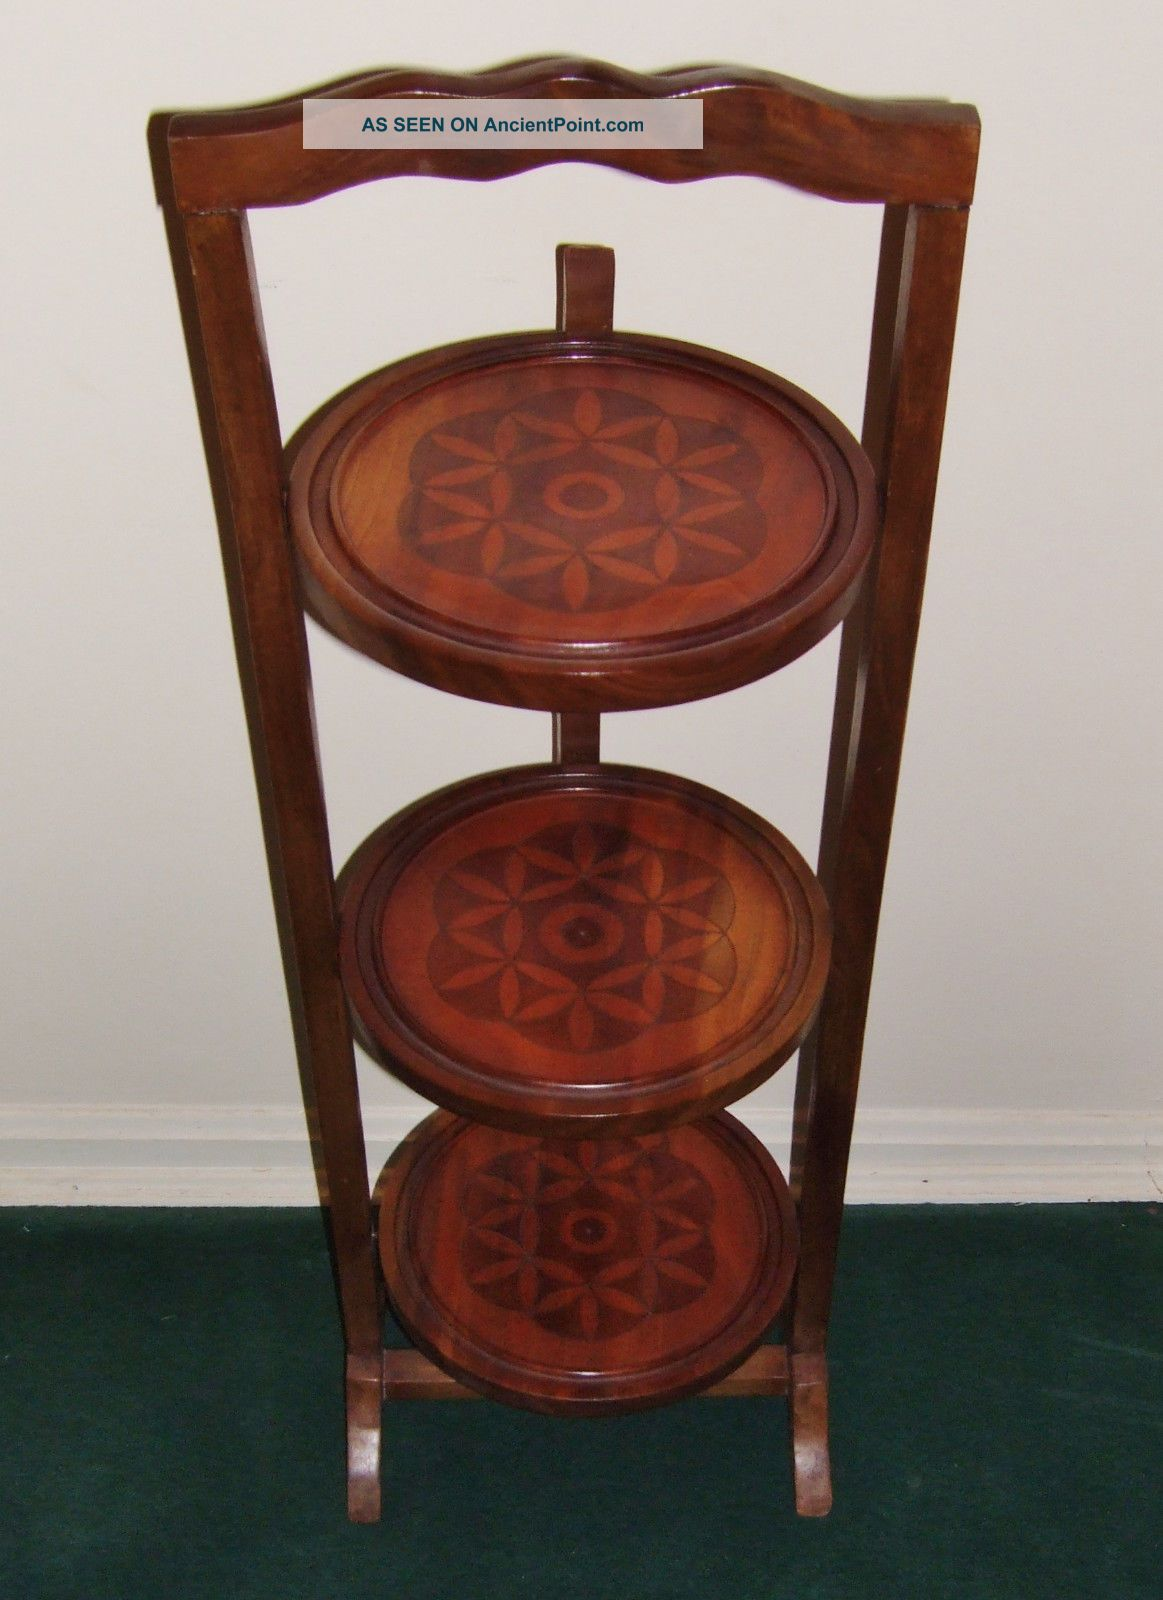 Antique Folding 3 Tier Cake Pie Display Plant Stand Hand Carved Hardwood 1900-1950 photo